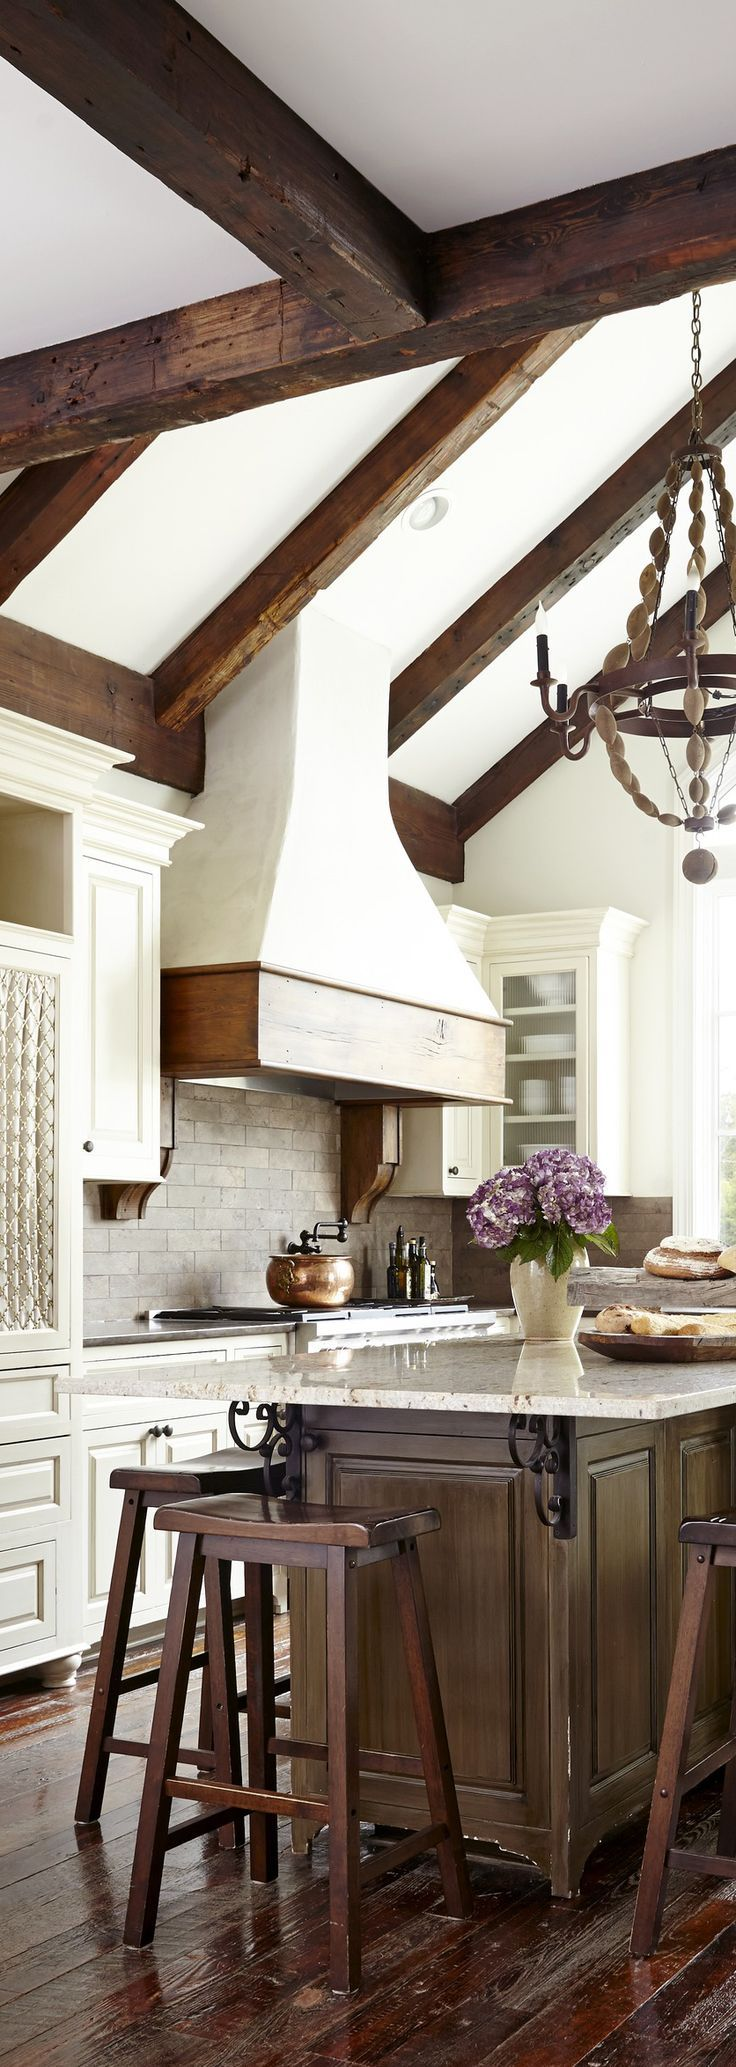 25 Incredible Good Kitchen Design Ideas  French Country Kitchens Stunning Good Kitchen Designs Decorating Inspiration